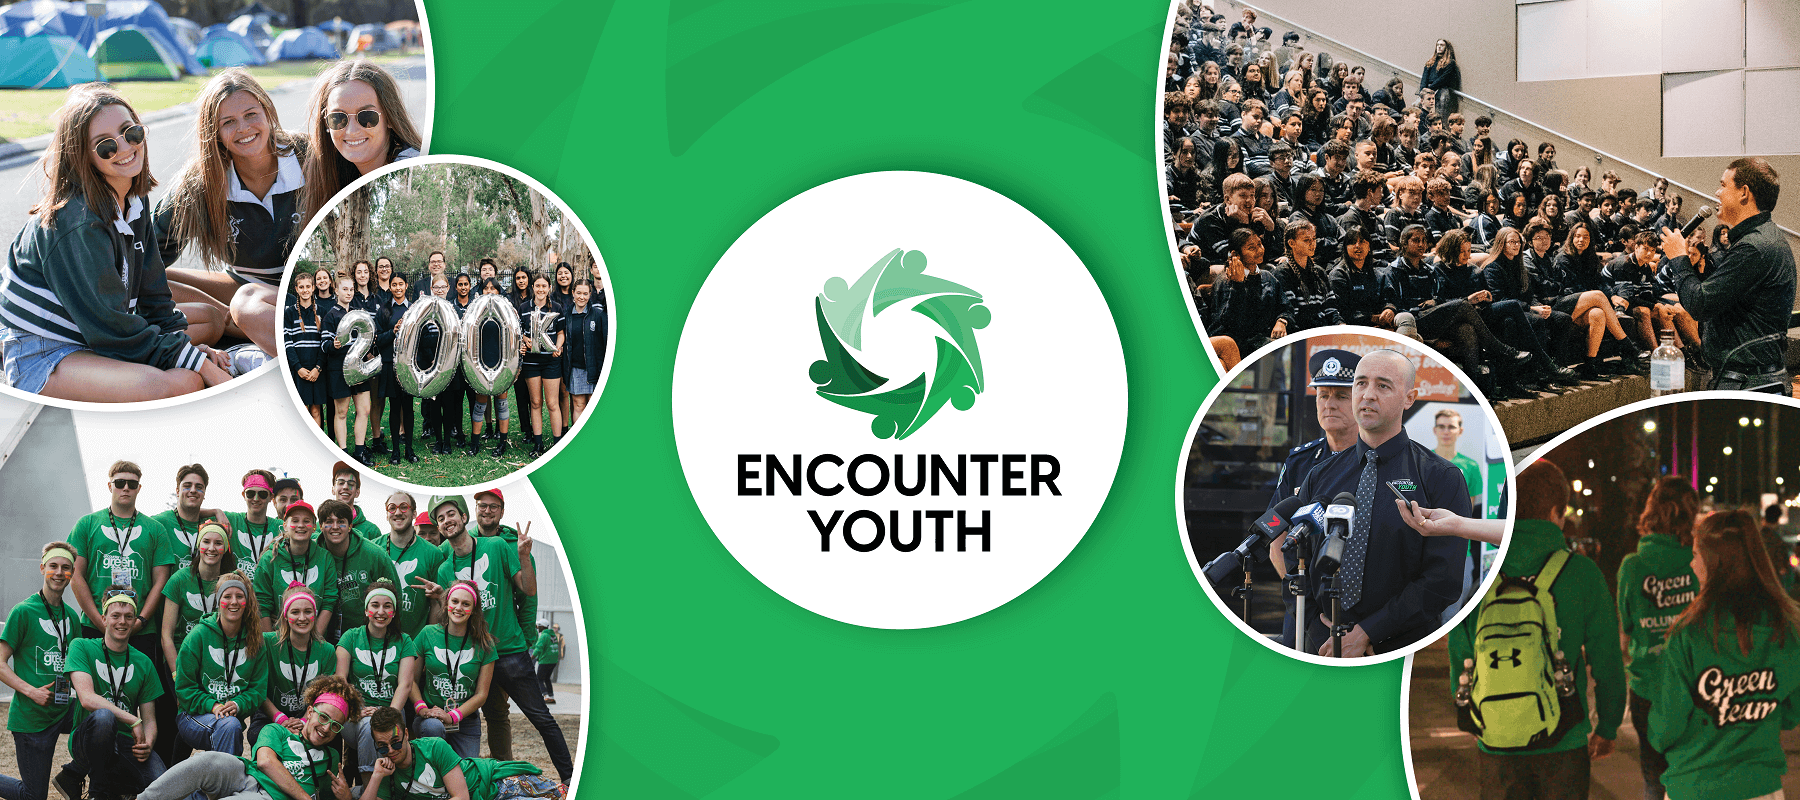 Encounter Youth seeks to be a positive influence on young people.